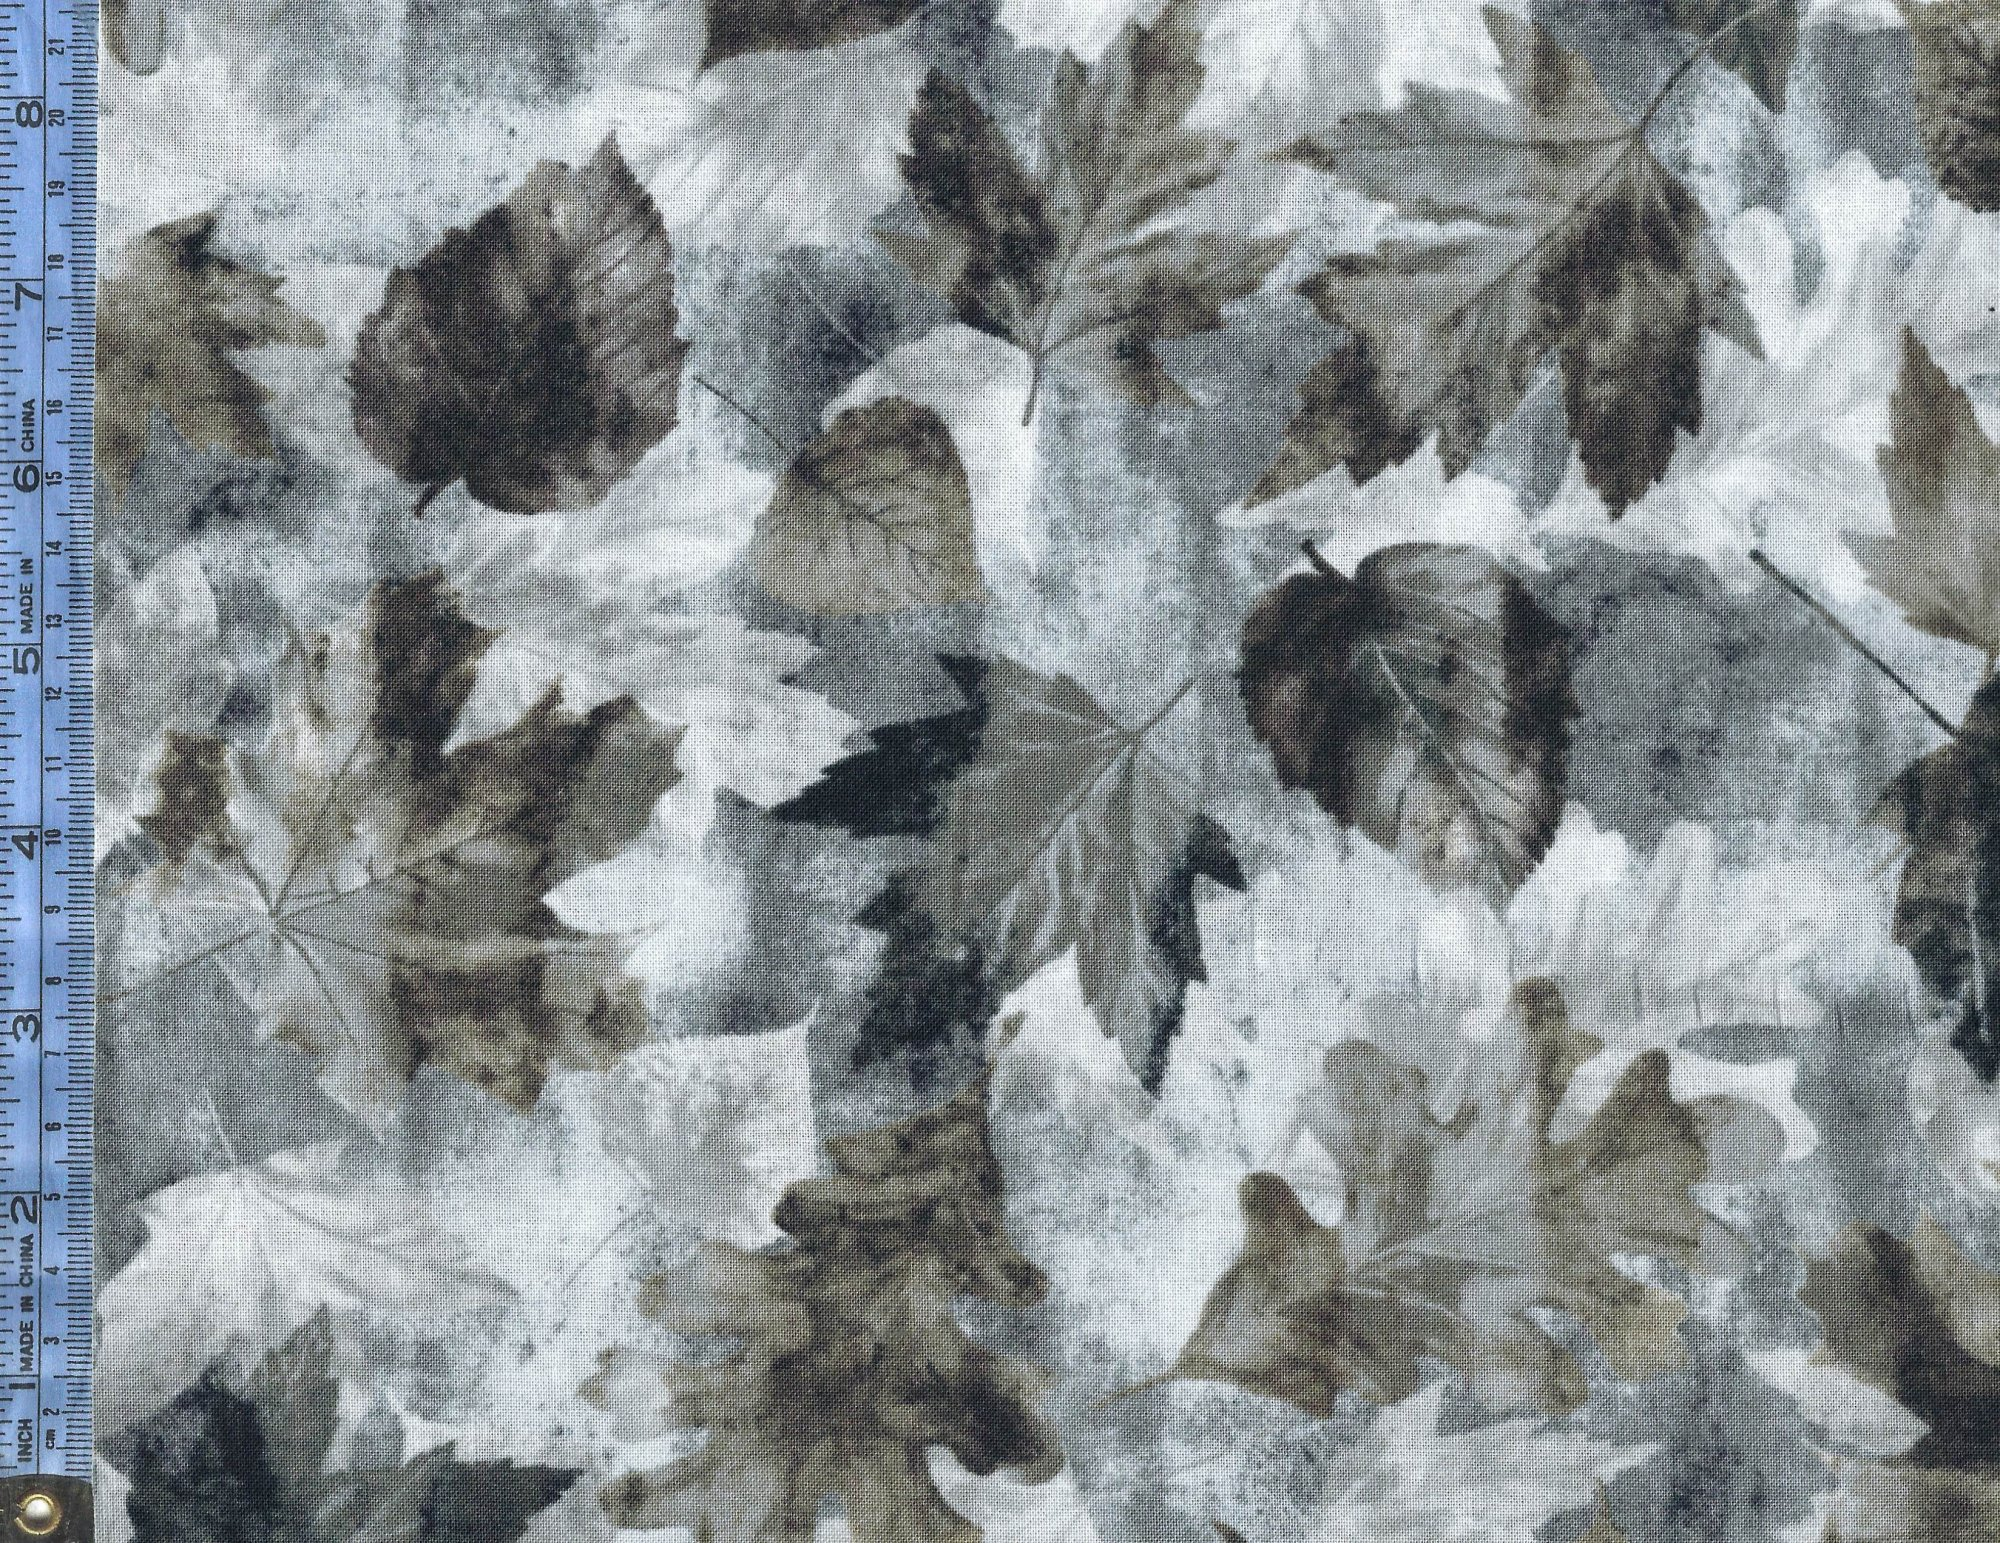 Into the Woods II - (8722-11) gray taupe and charcoal gray leaves on mottled gray background